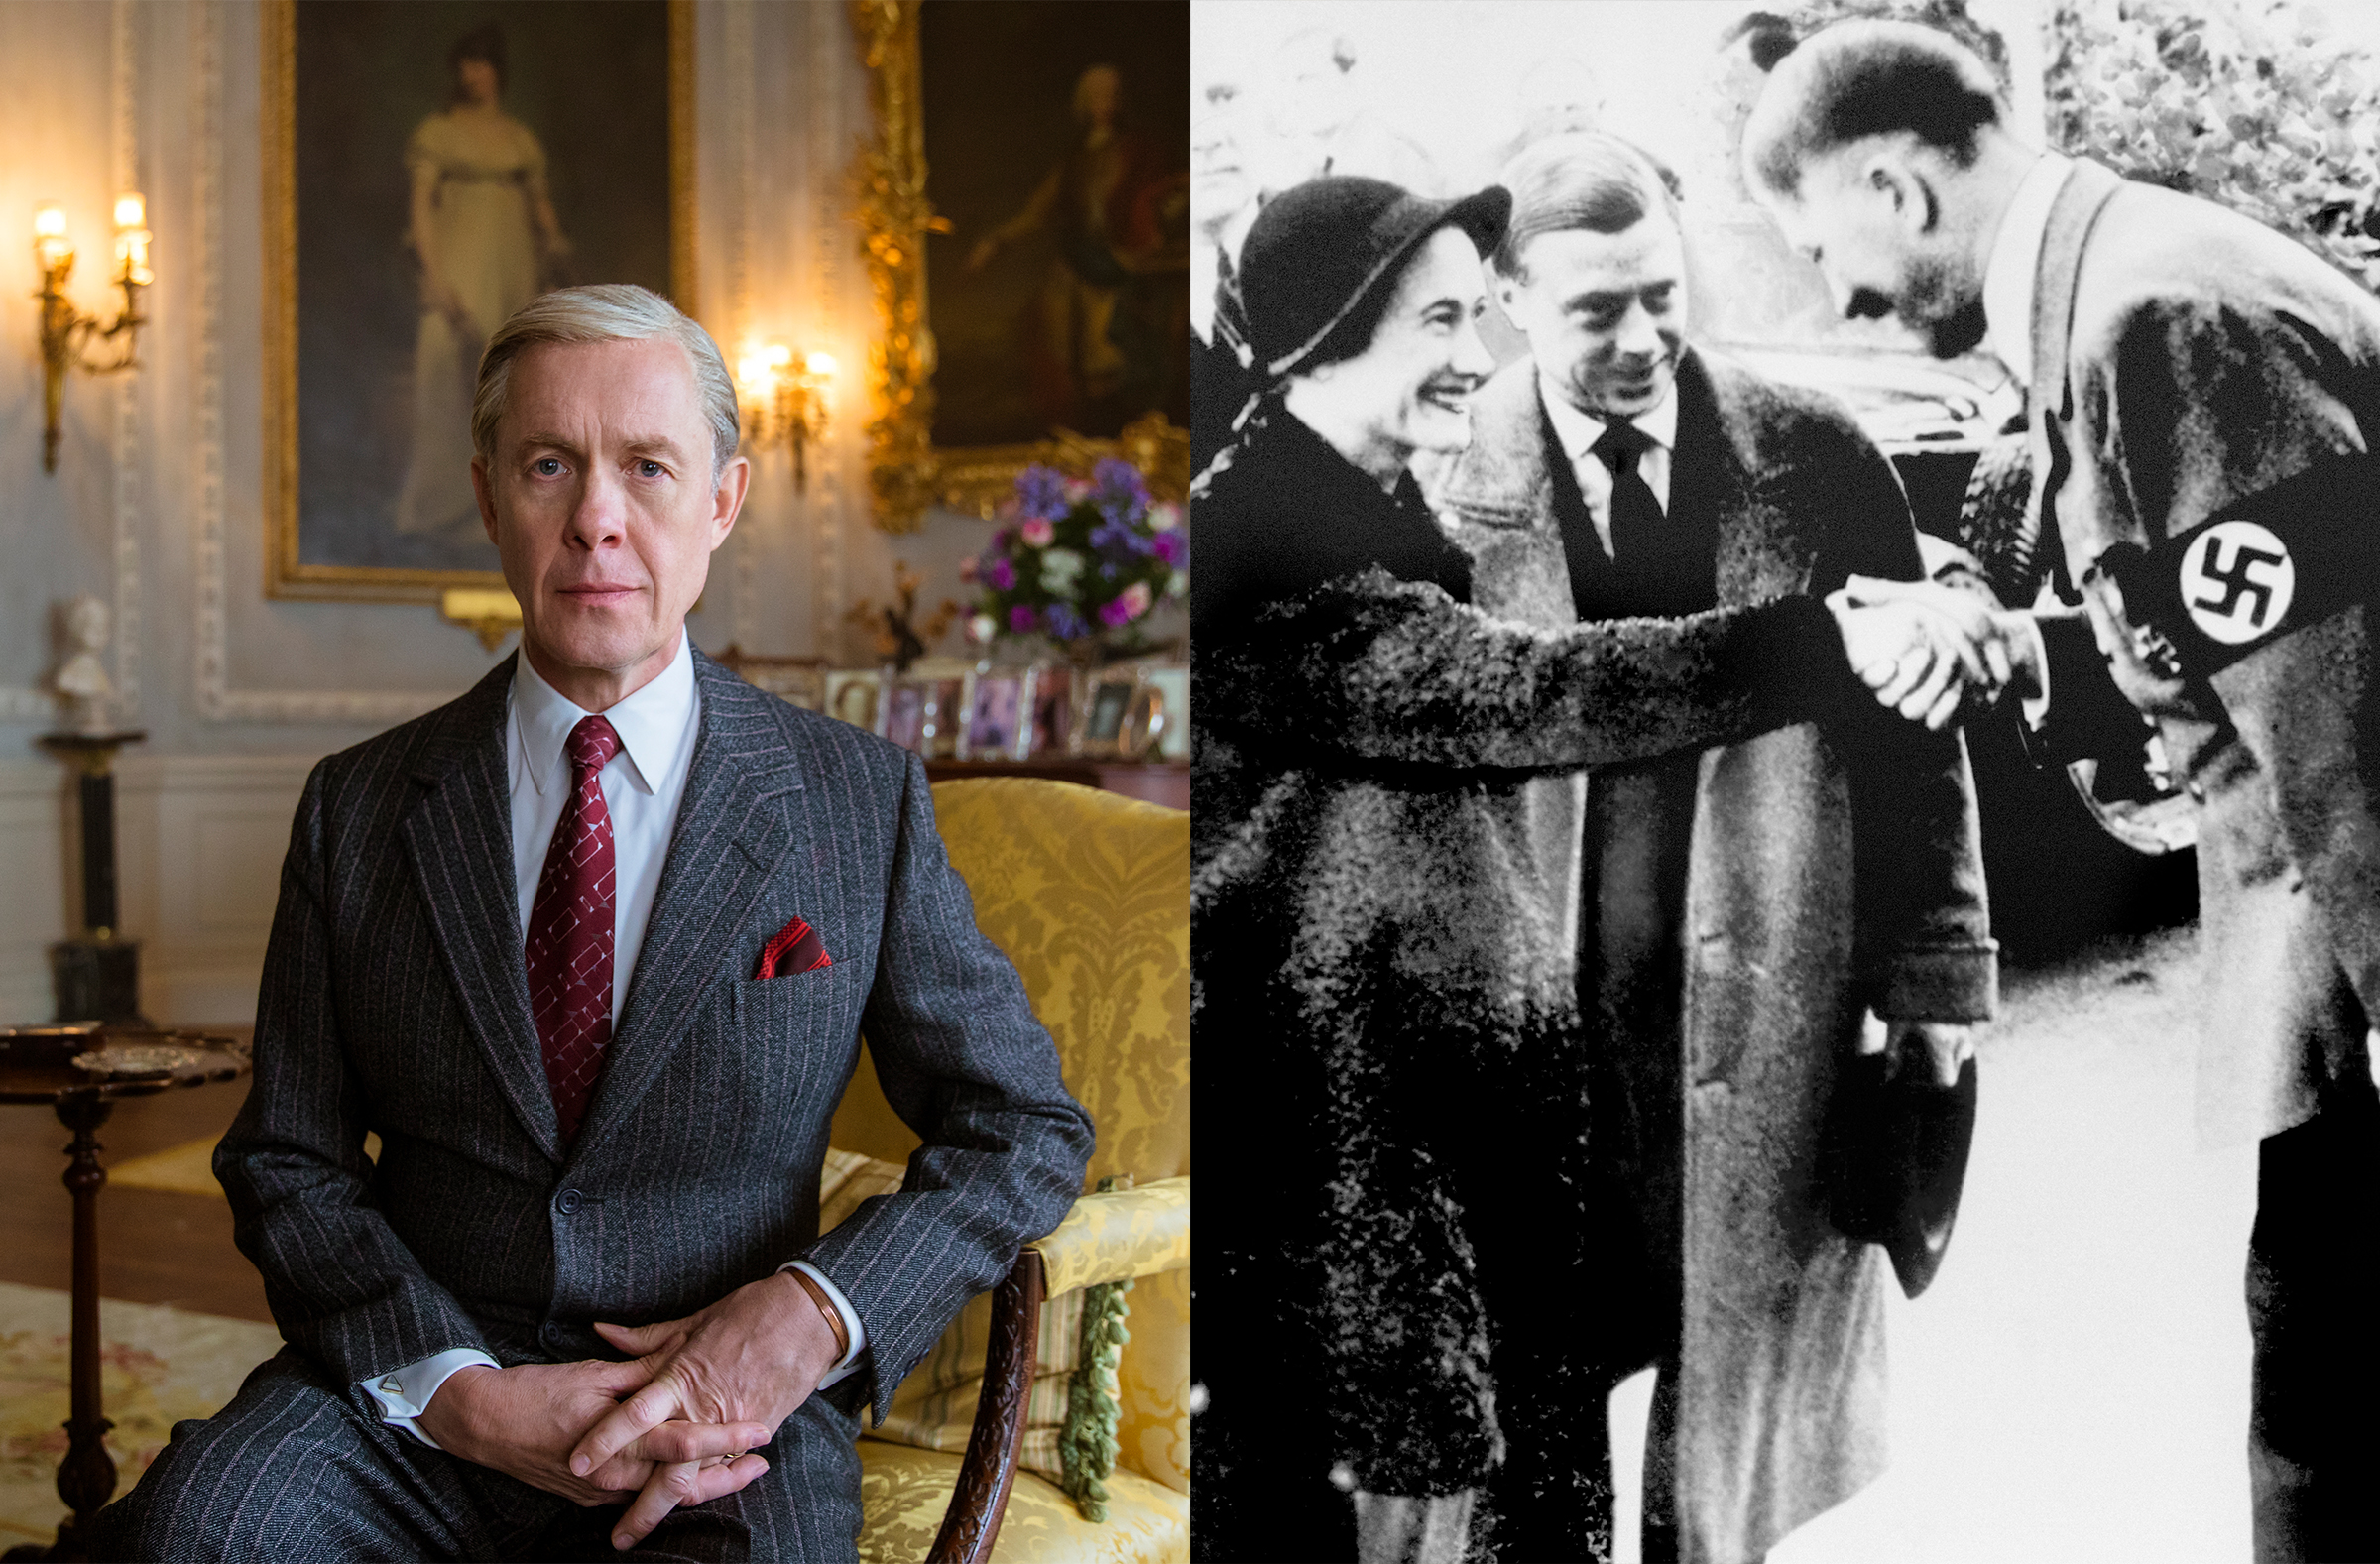 On the left, Edward, Duke of Windsor (formerly King Edward VIII) from Netflix's The Crown, depicted by Alex Jennings. On the right, the real Edward with his wife Wallis Simpson meeting with Adolf Hitler in Munich, 1937 (Credit: Robert Viglasky/Netflix & PA Wire/AP Photo).